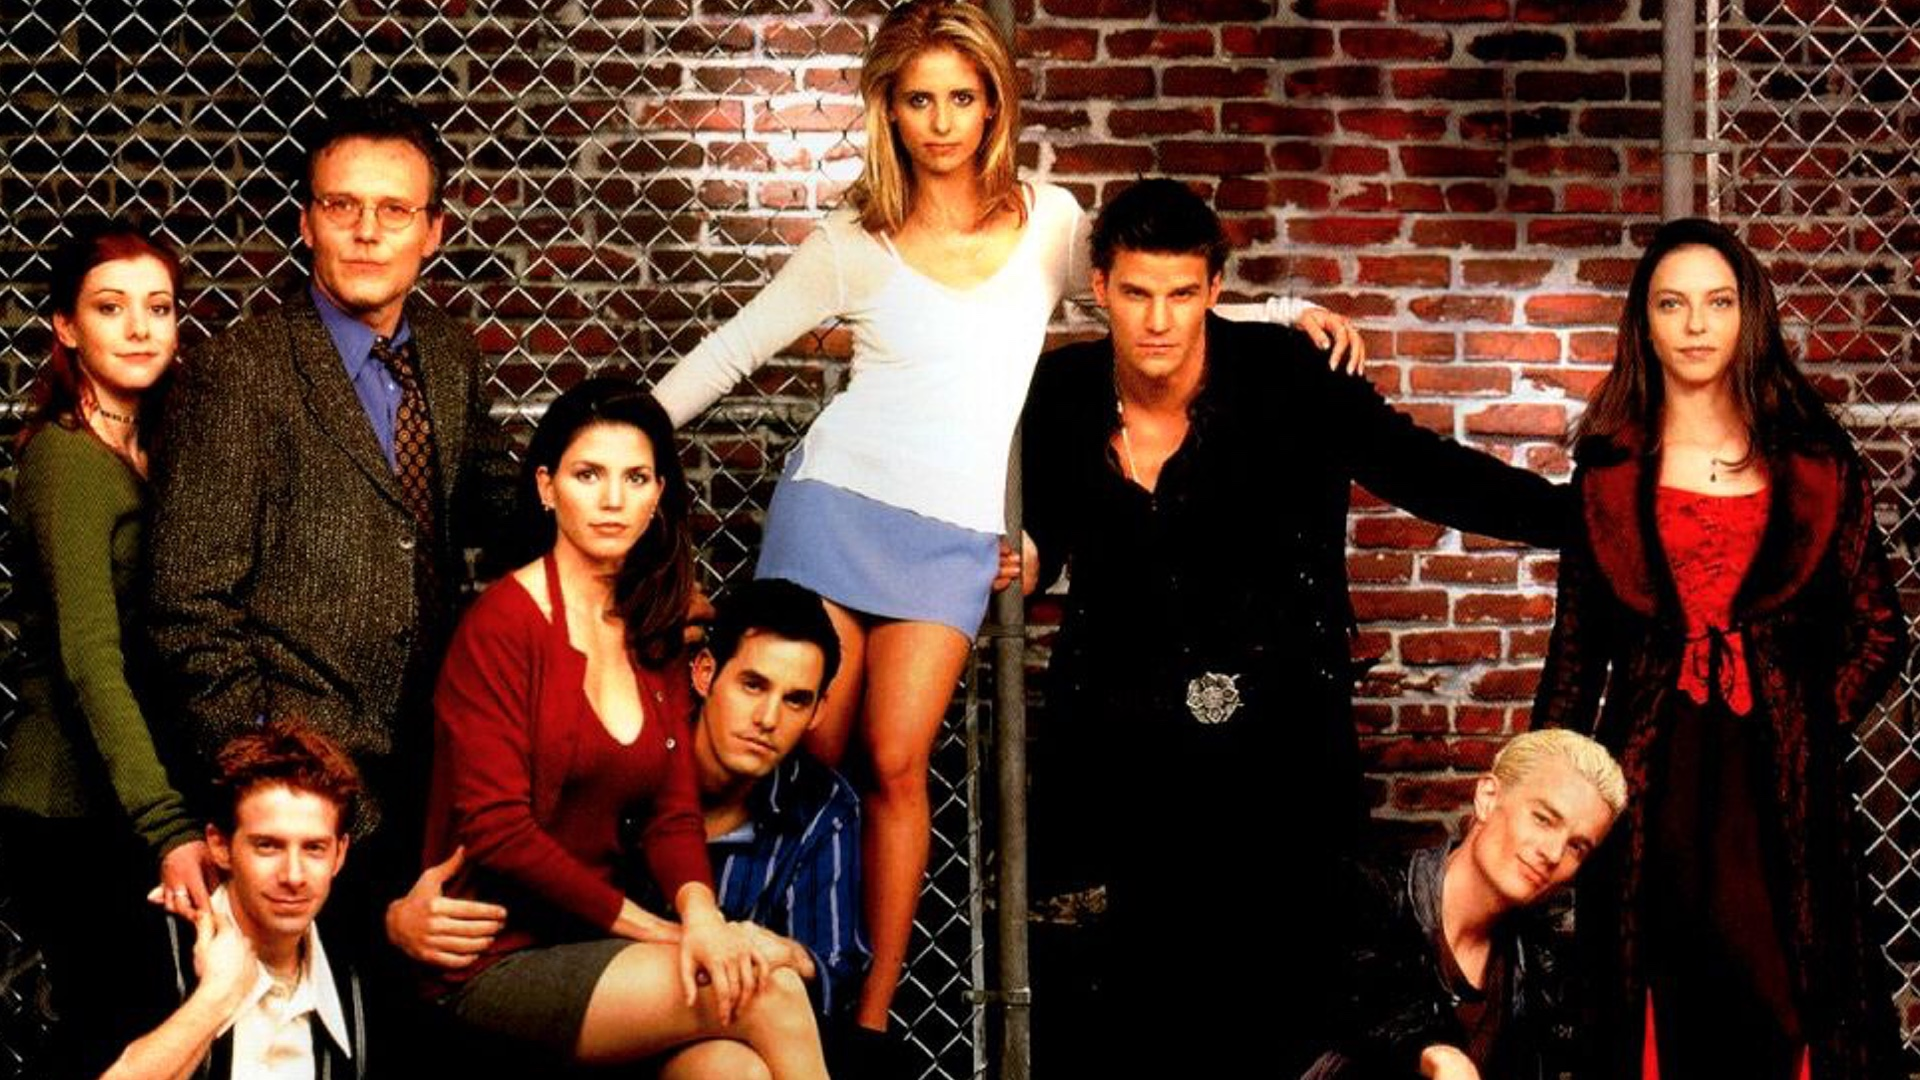 La Saison 2 de Buffy contre les vampires : Rouge Passion !